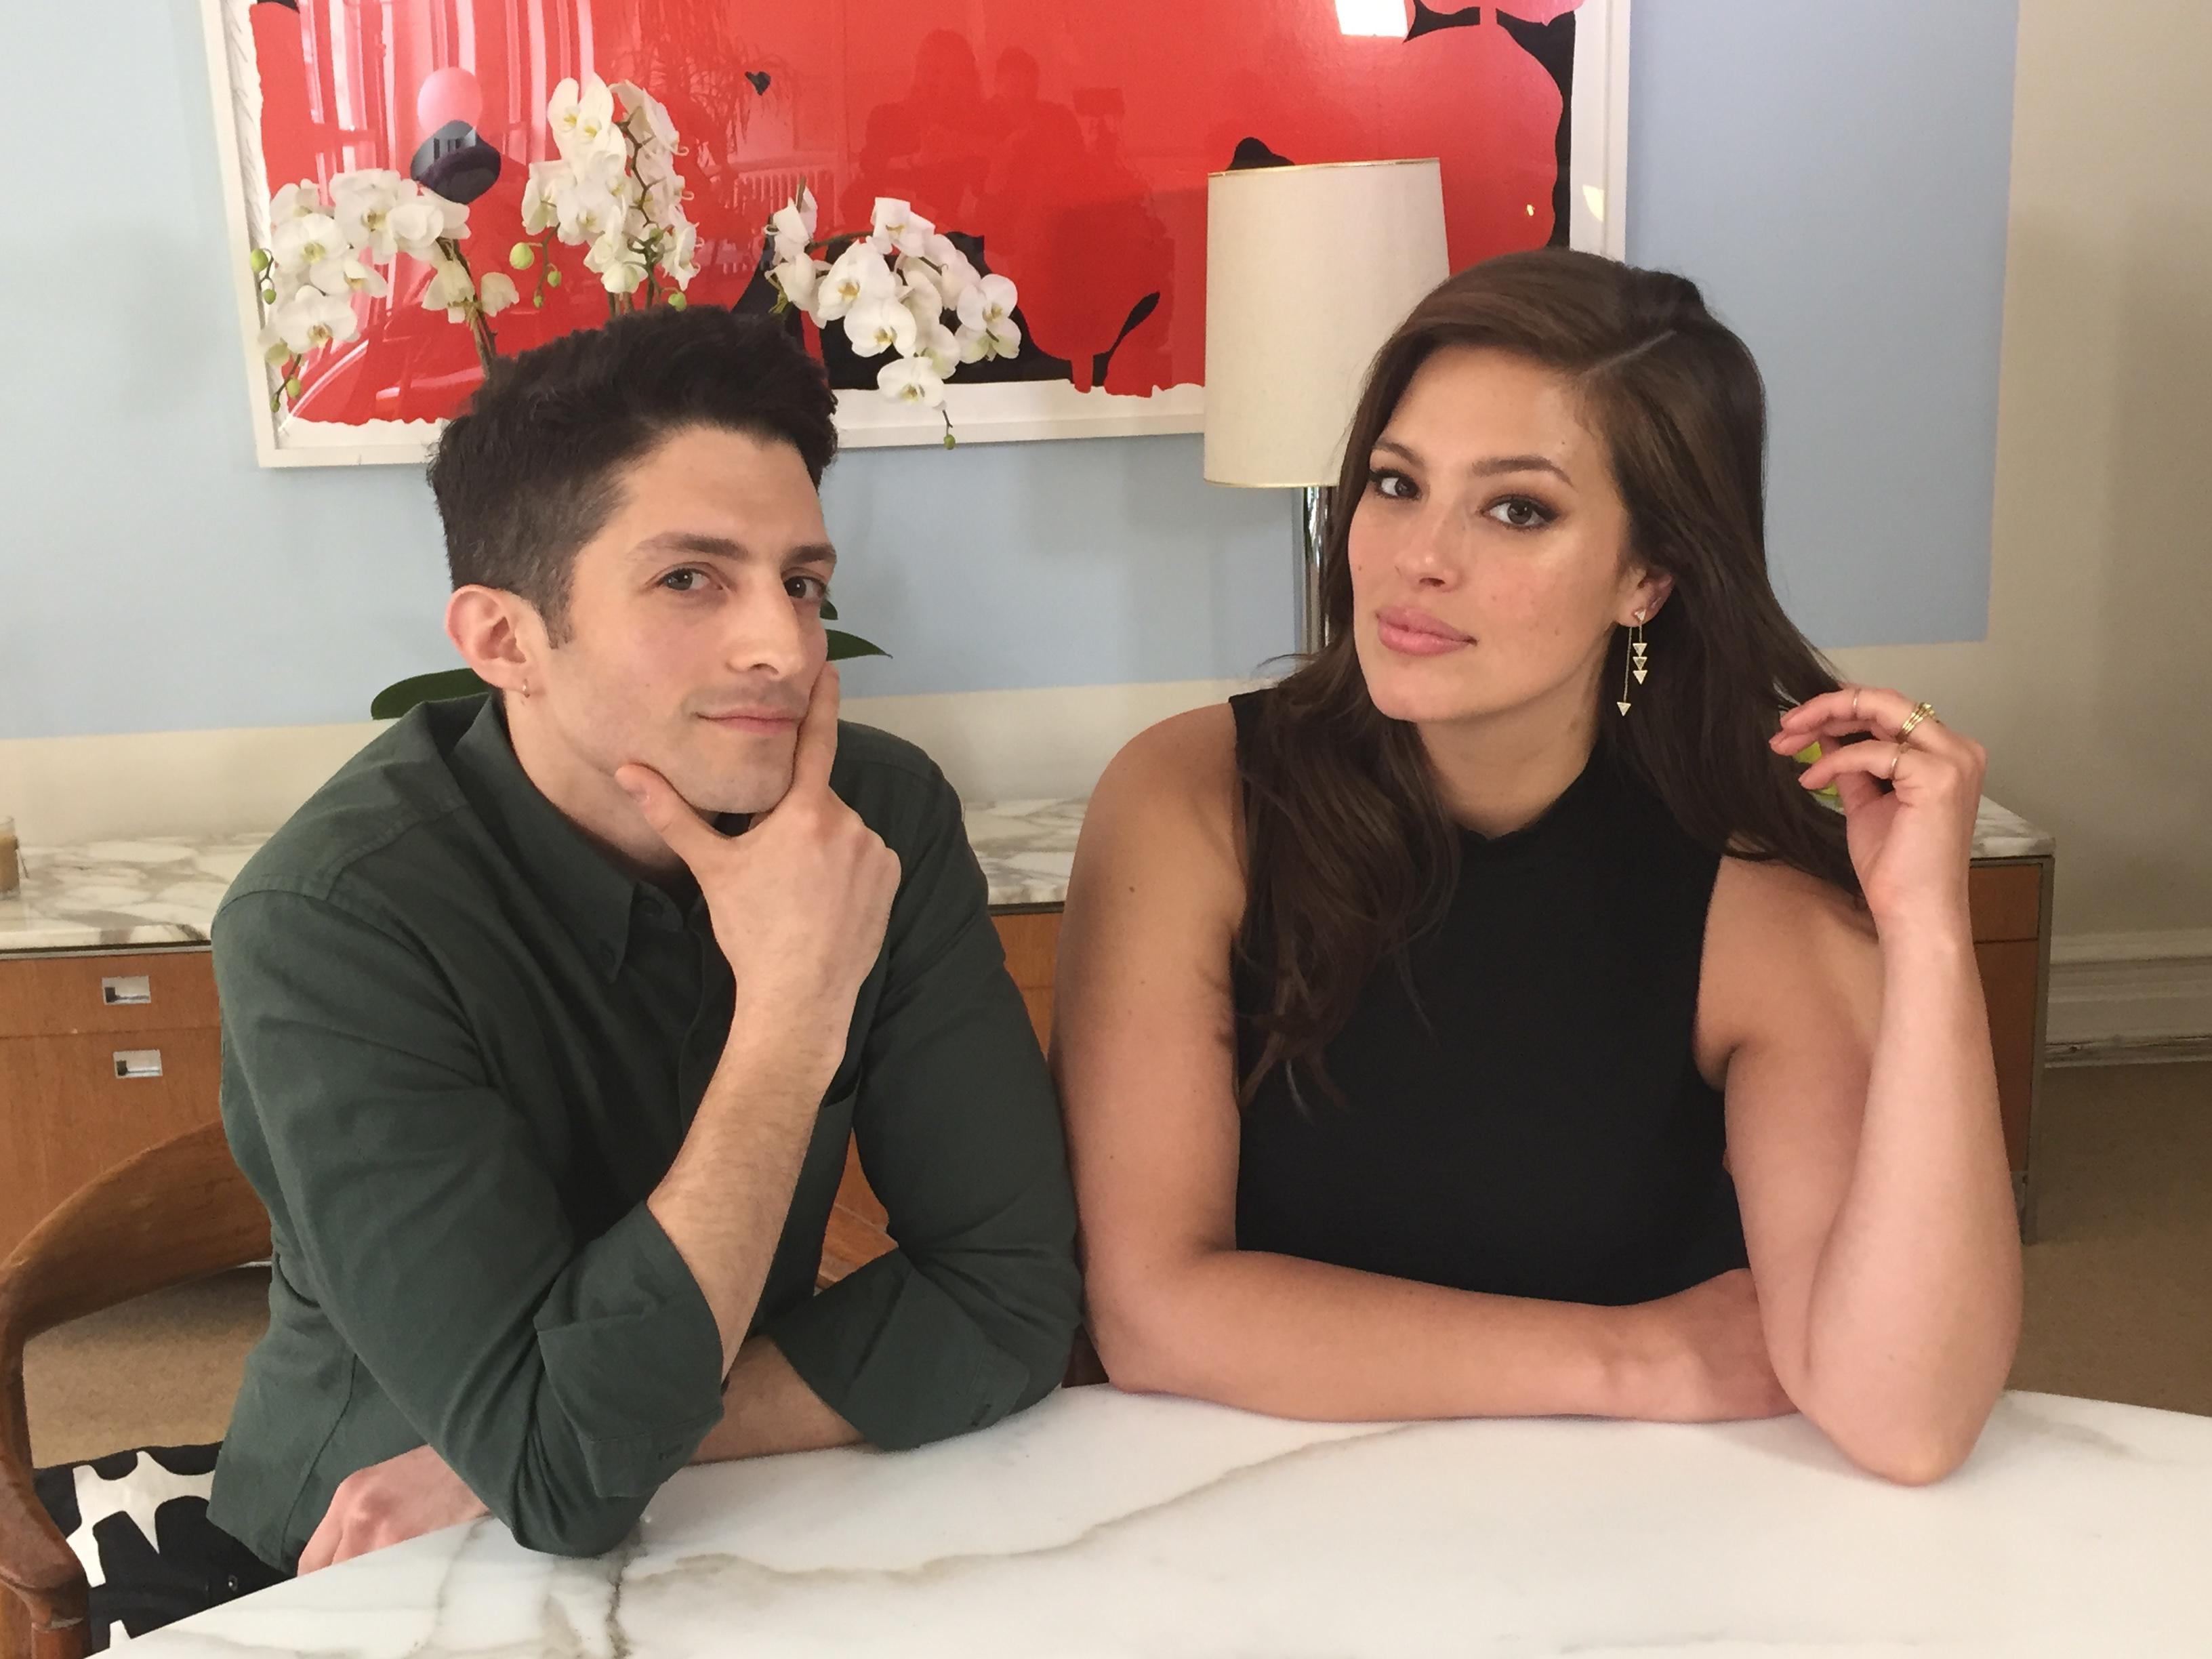 I Yahoo'd Myself: Ashley Graham